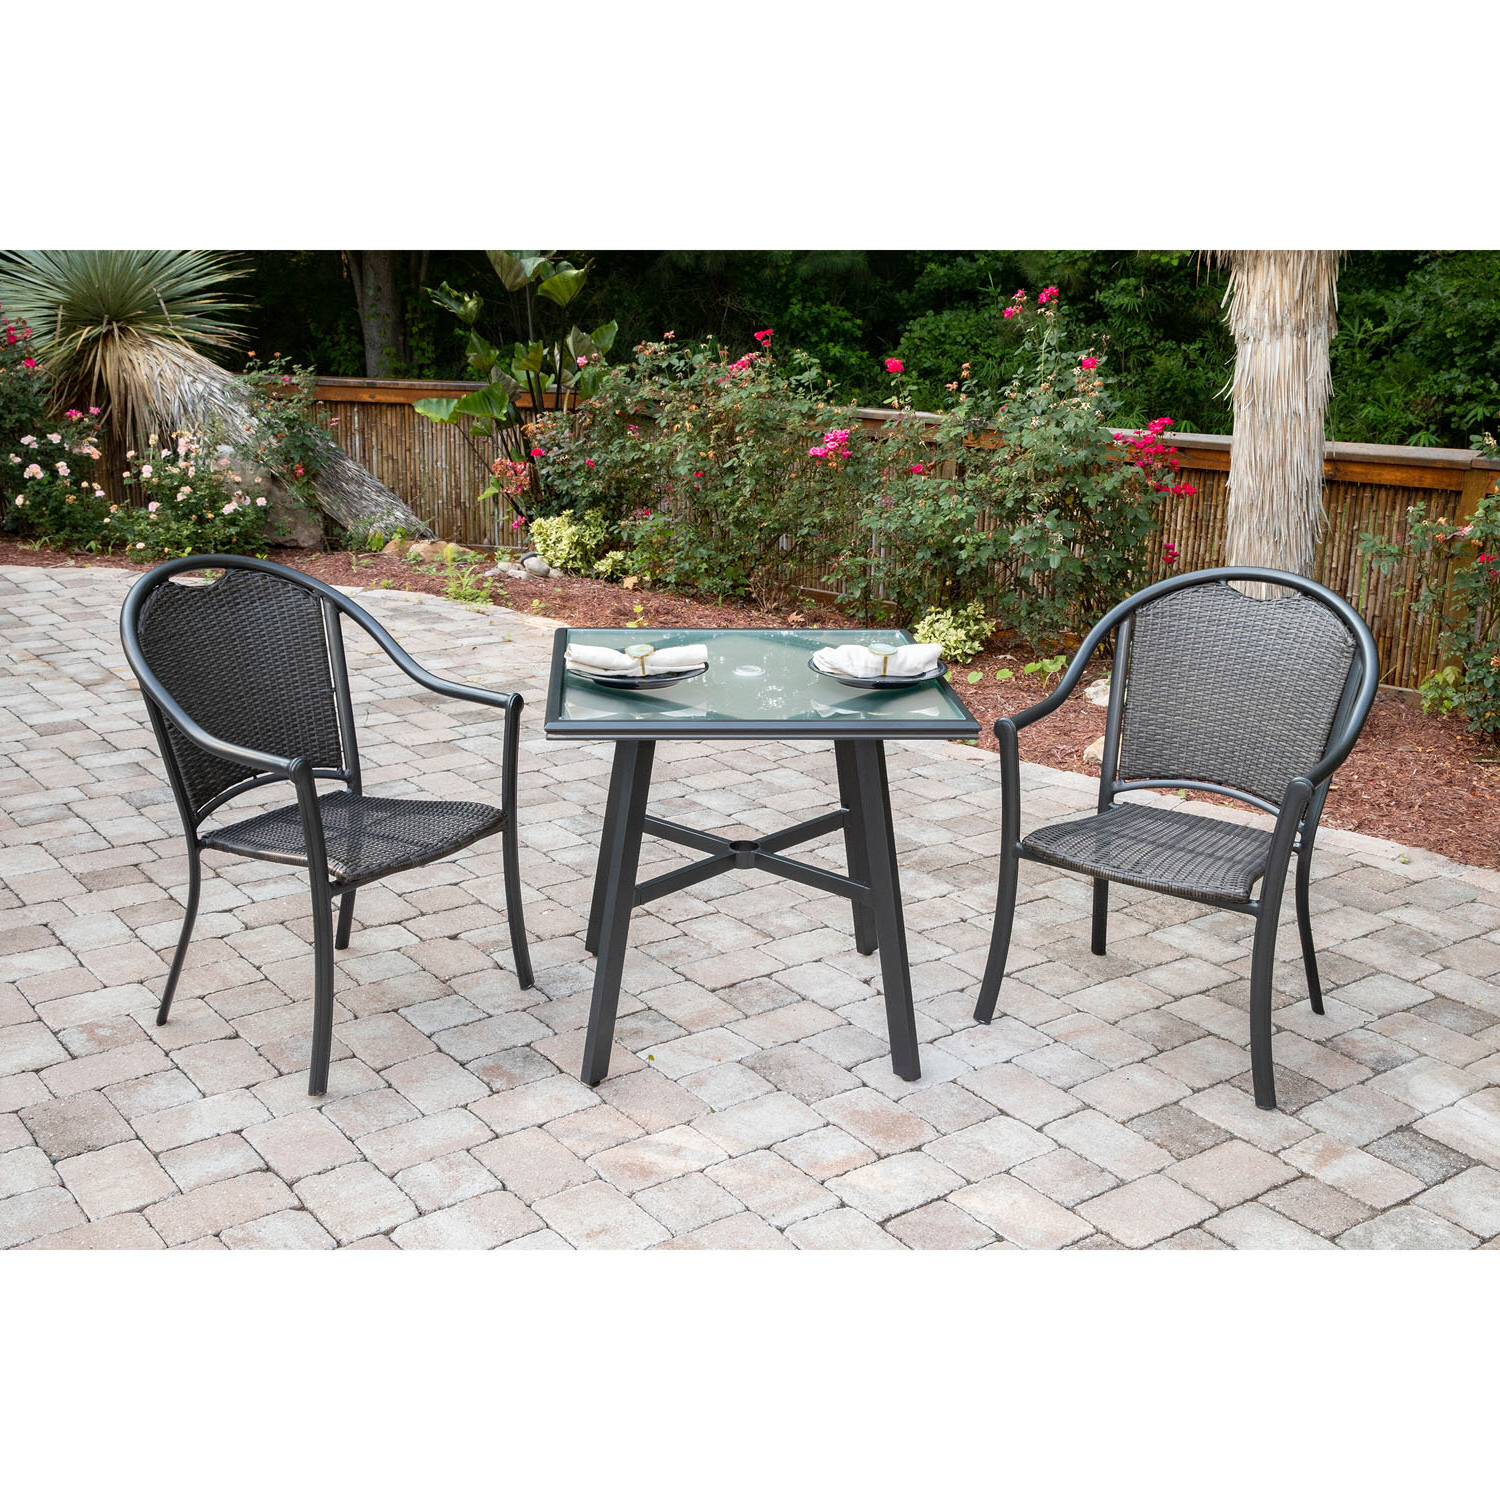 Most Current Bearden 3 Piece Dining Sets Inside Bearden 3 Piece Commercial Grade Patio Set With 2 Woven Dining Chairs And A 30 In (View 4 of 20)